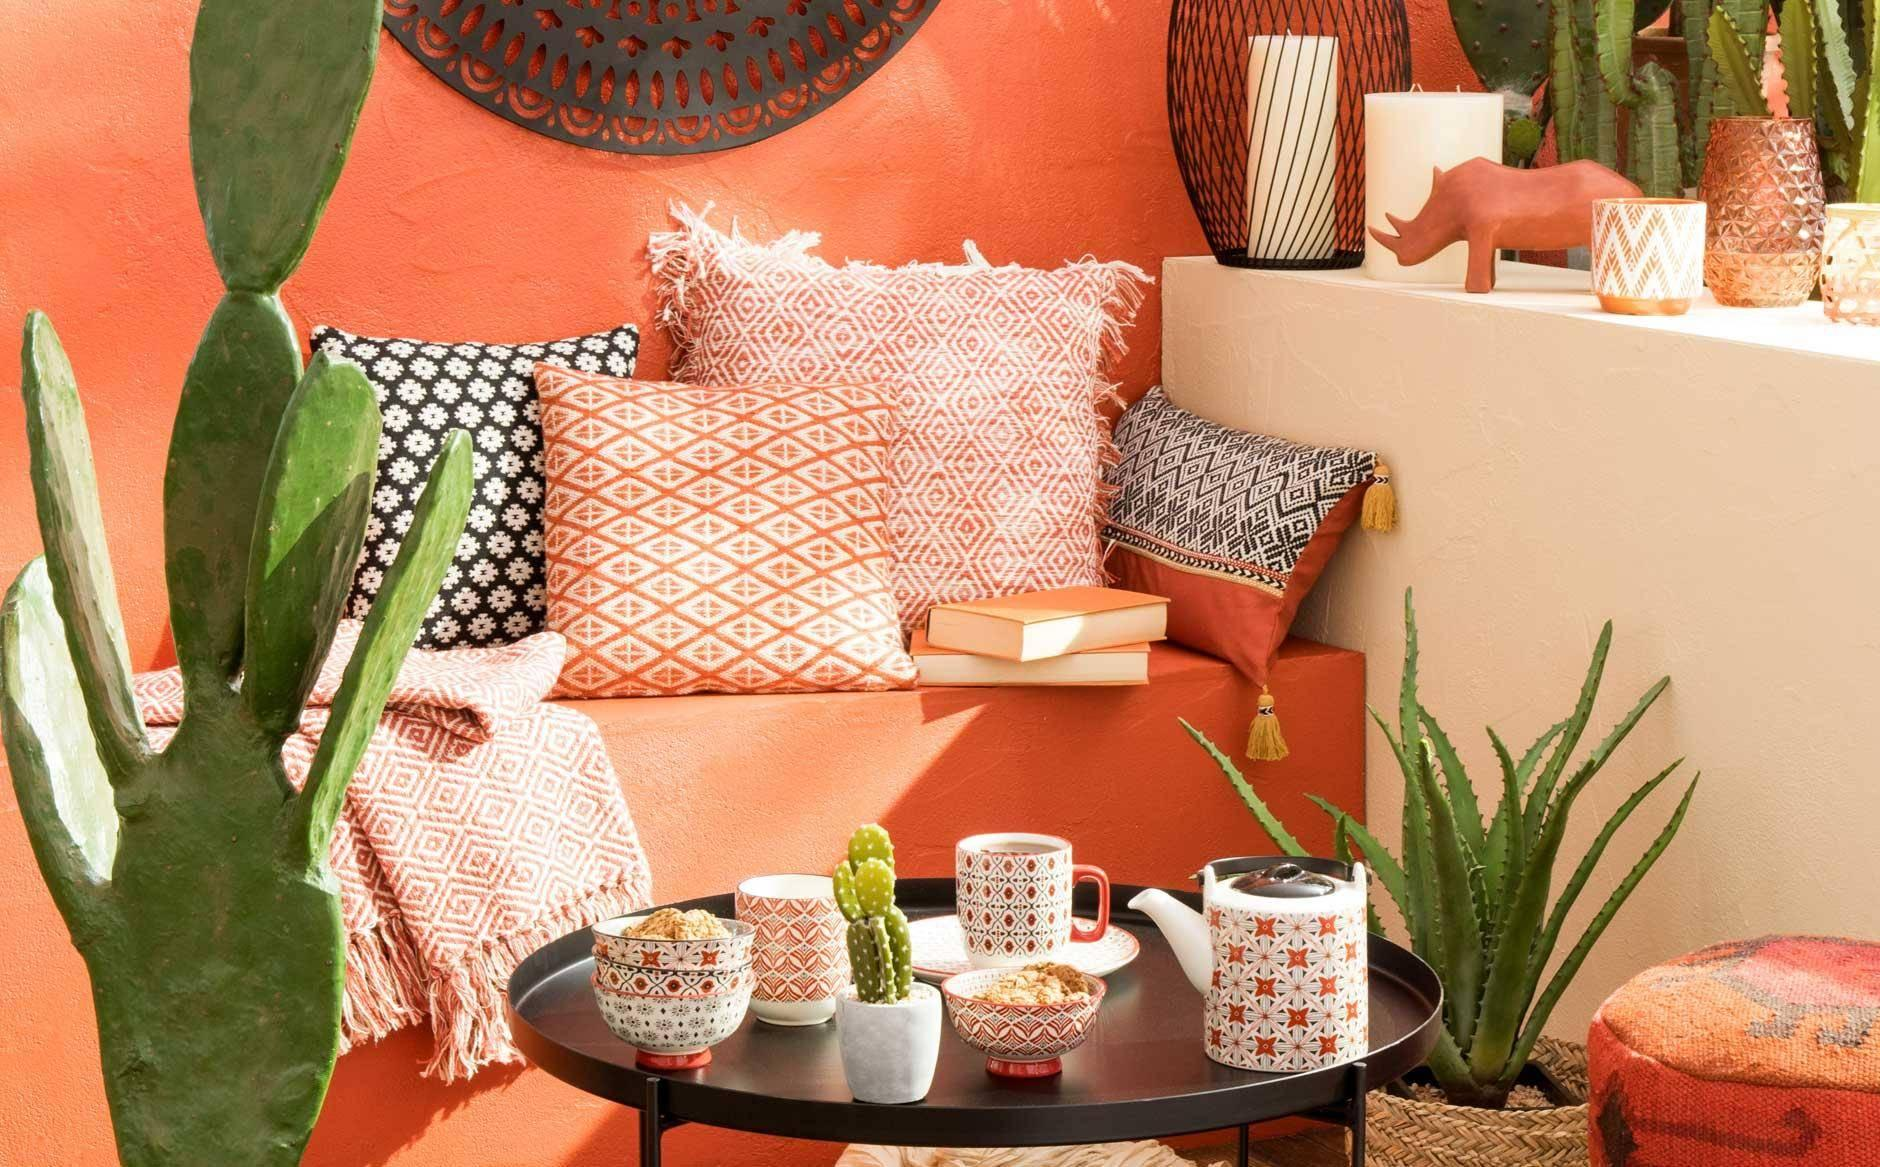 Maisons Du Monde January Sale Homeware Latest News Breaking Stories And Comment The Independent